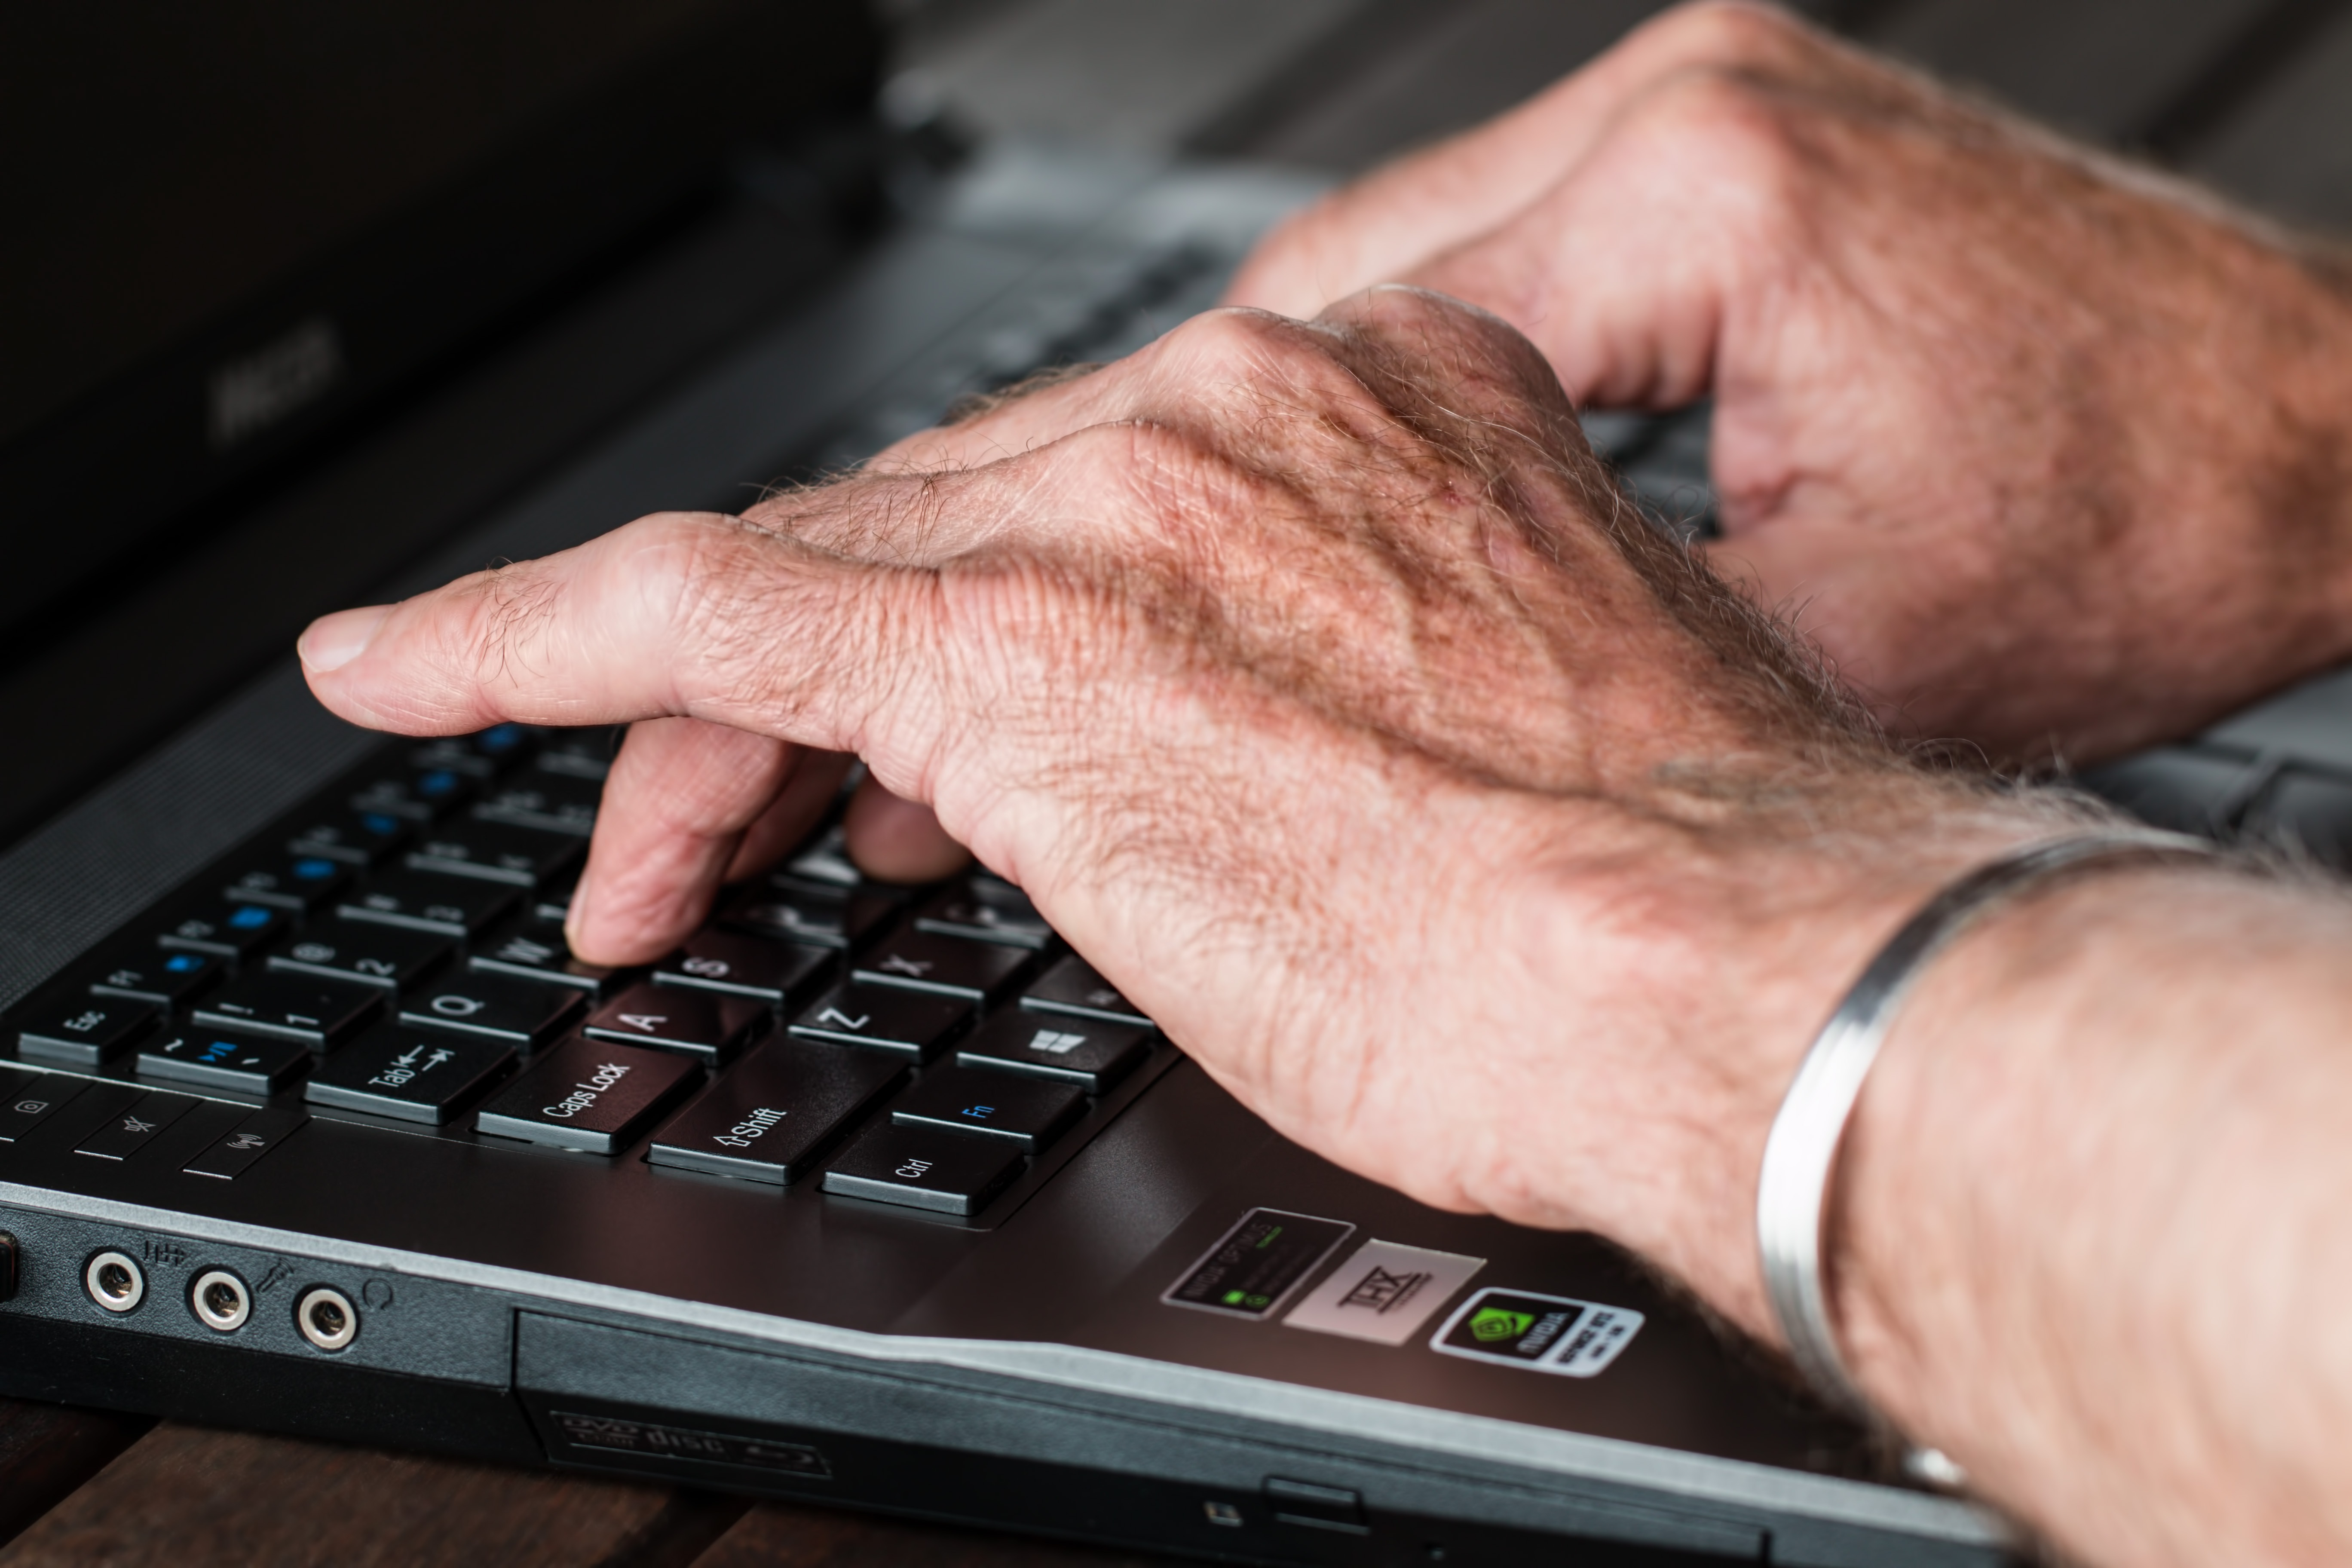 picture of elderly hands typing on a laptop